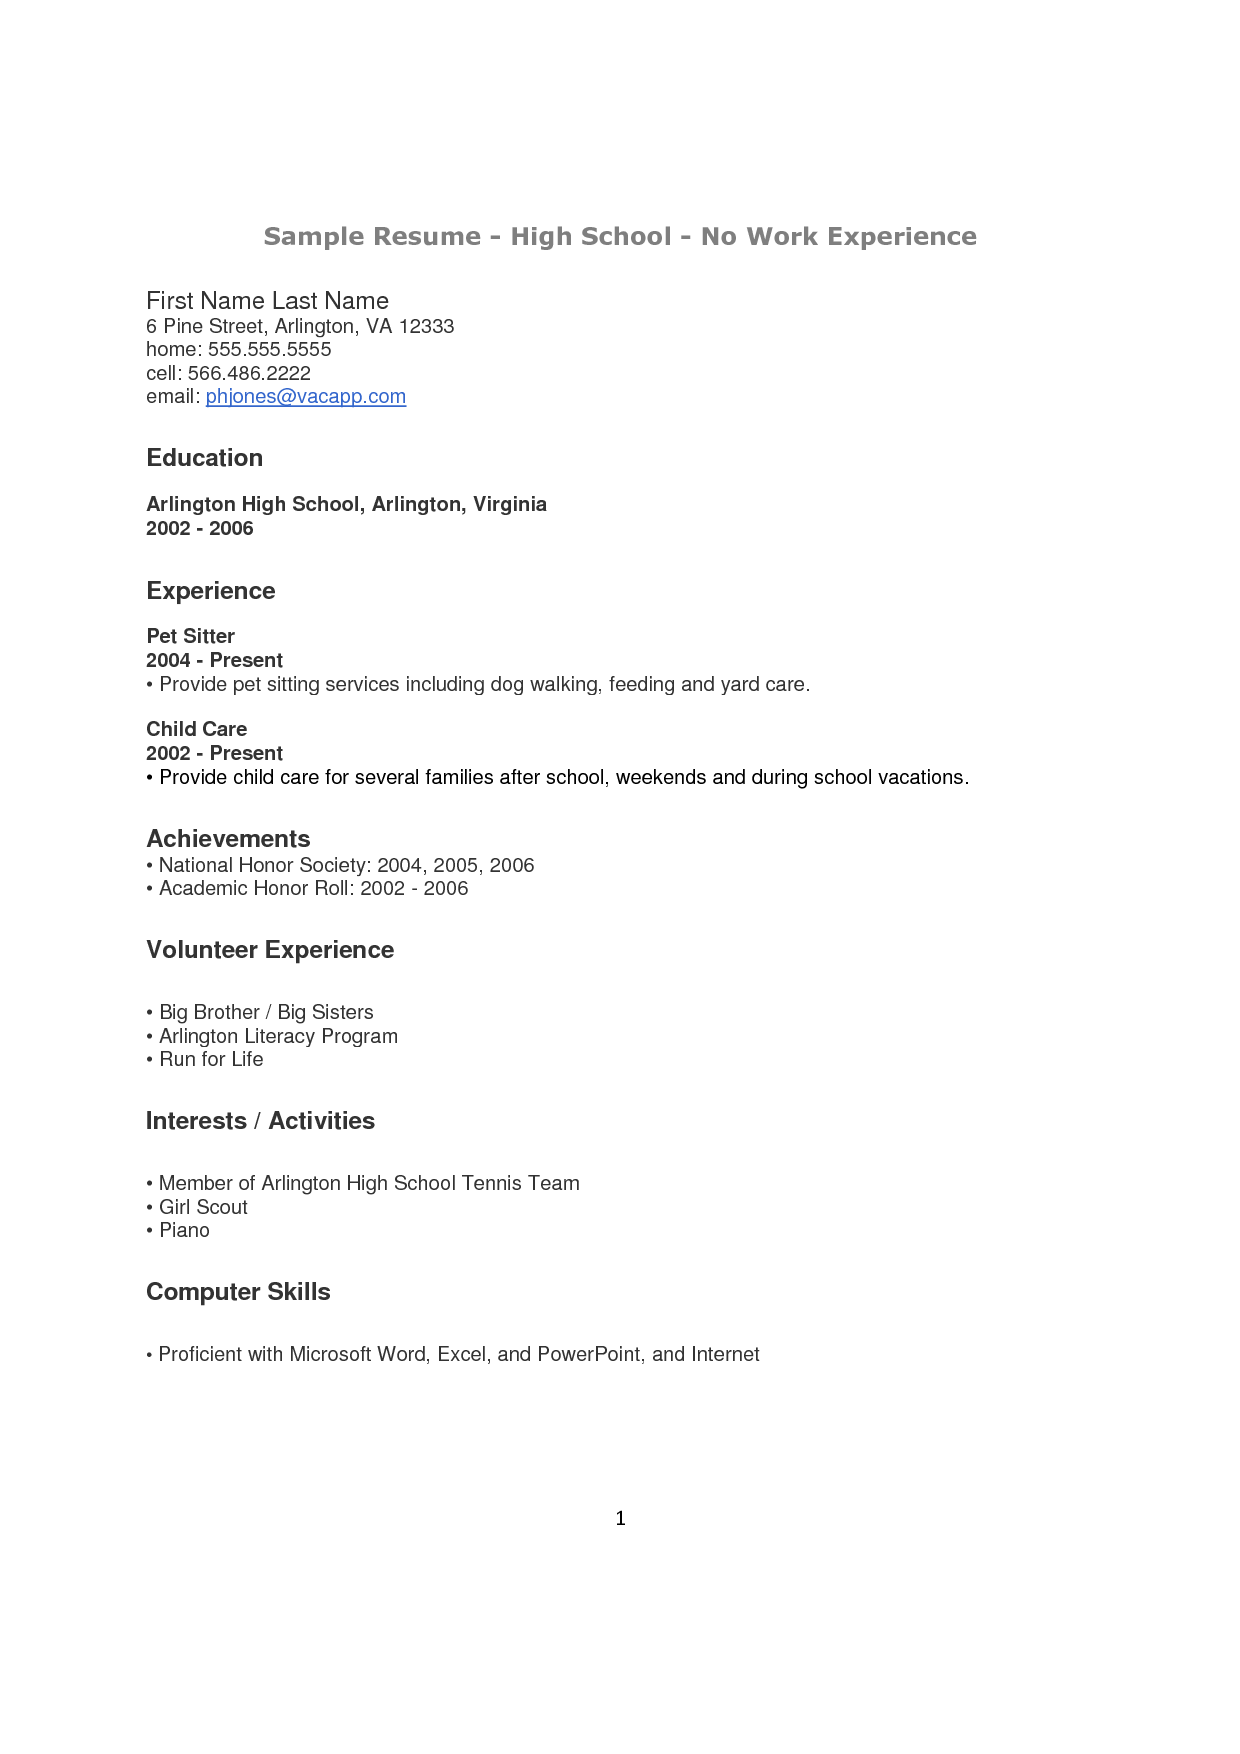 resume template high school no experience